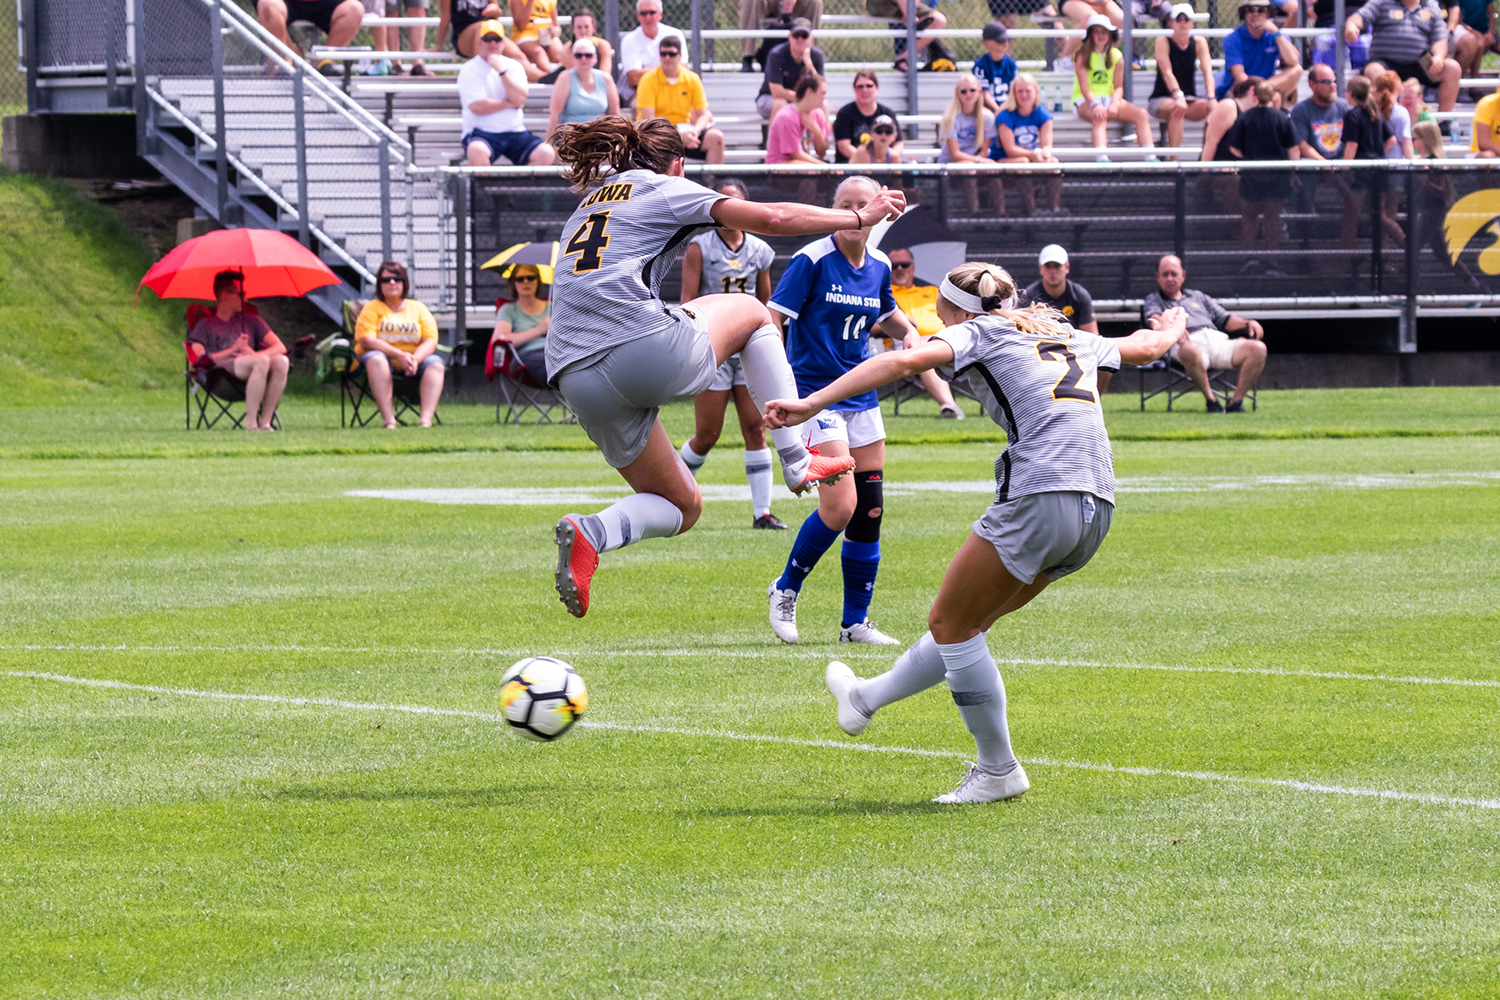 Iowa soccer player Kaleigh Haus jumps over the ball as Hailey Rydberg tries to center it during a game against Indiana State University on Sunday, Aug. 26, 2018. The Hawkeyes defeated the Sycamores 1-0.